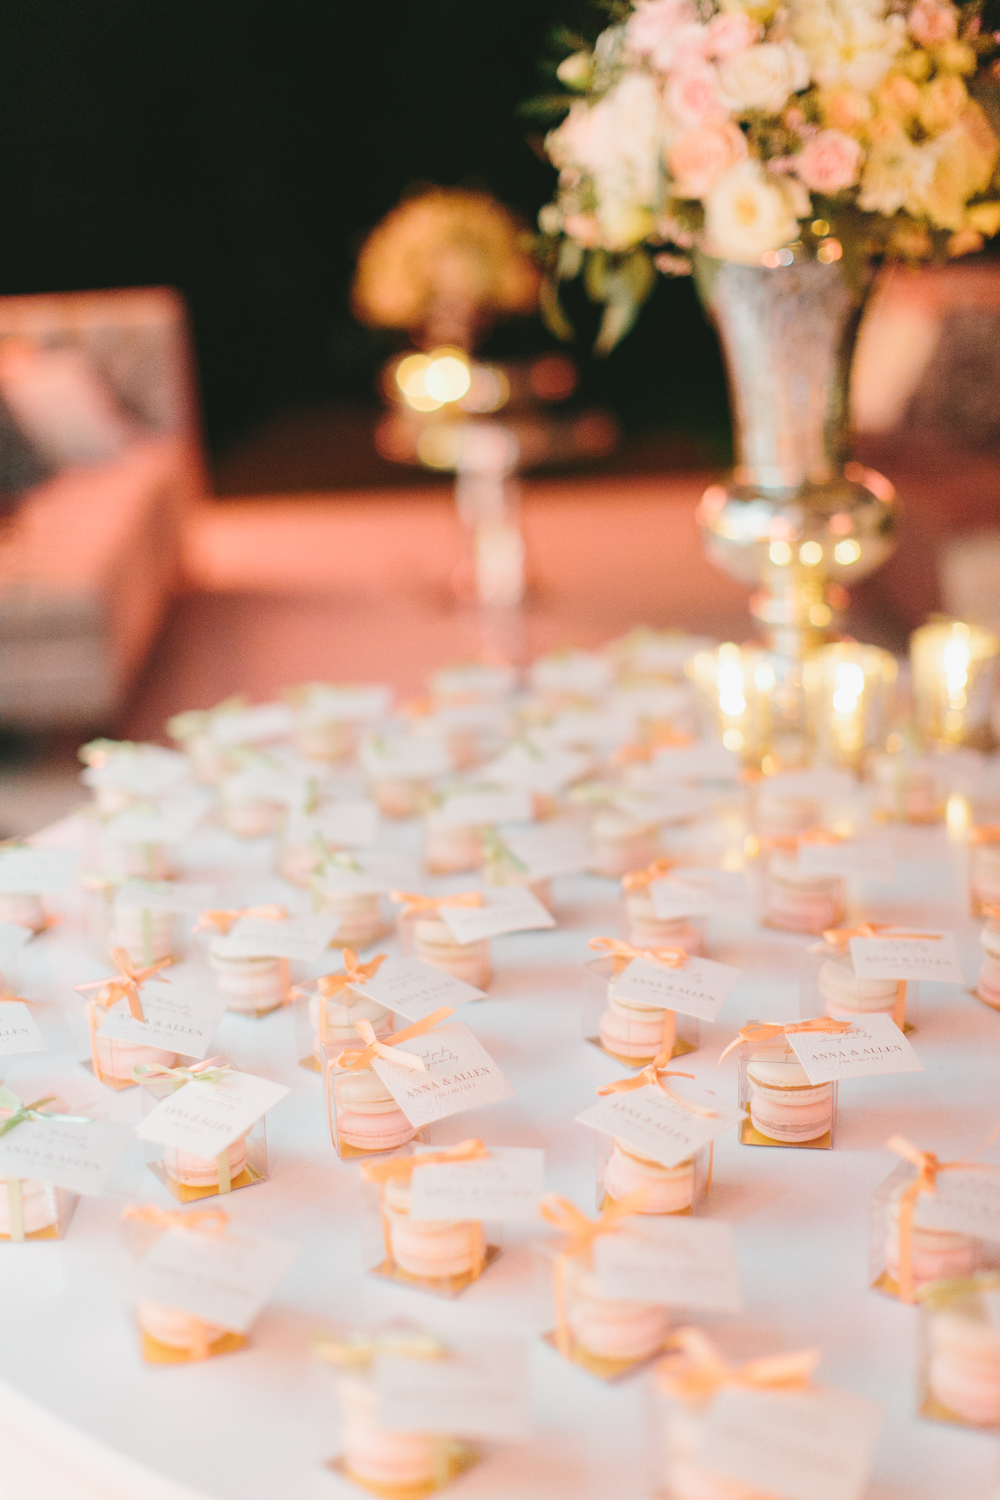 Macarons Favor Boxes | Wedding Planning & Design by Cynthia Martyn Fine Events |  | Fine Art Wedding Planning & Design